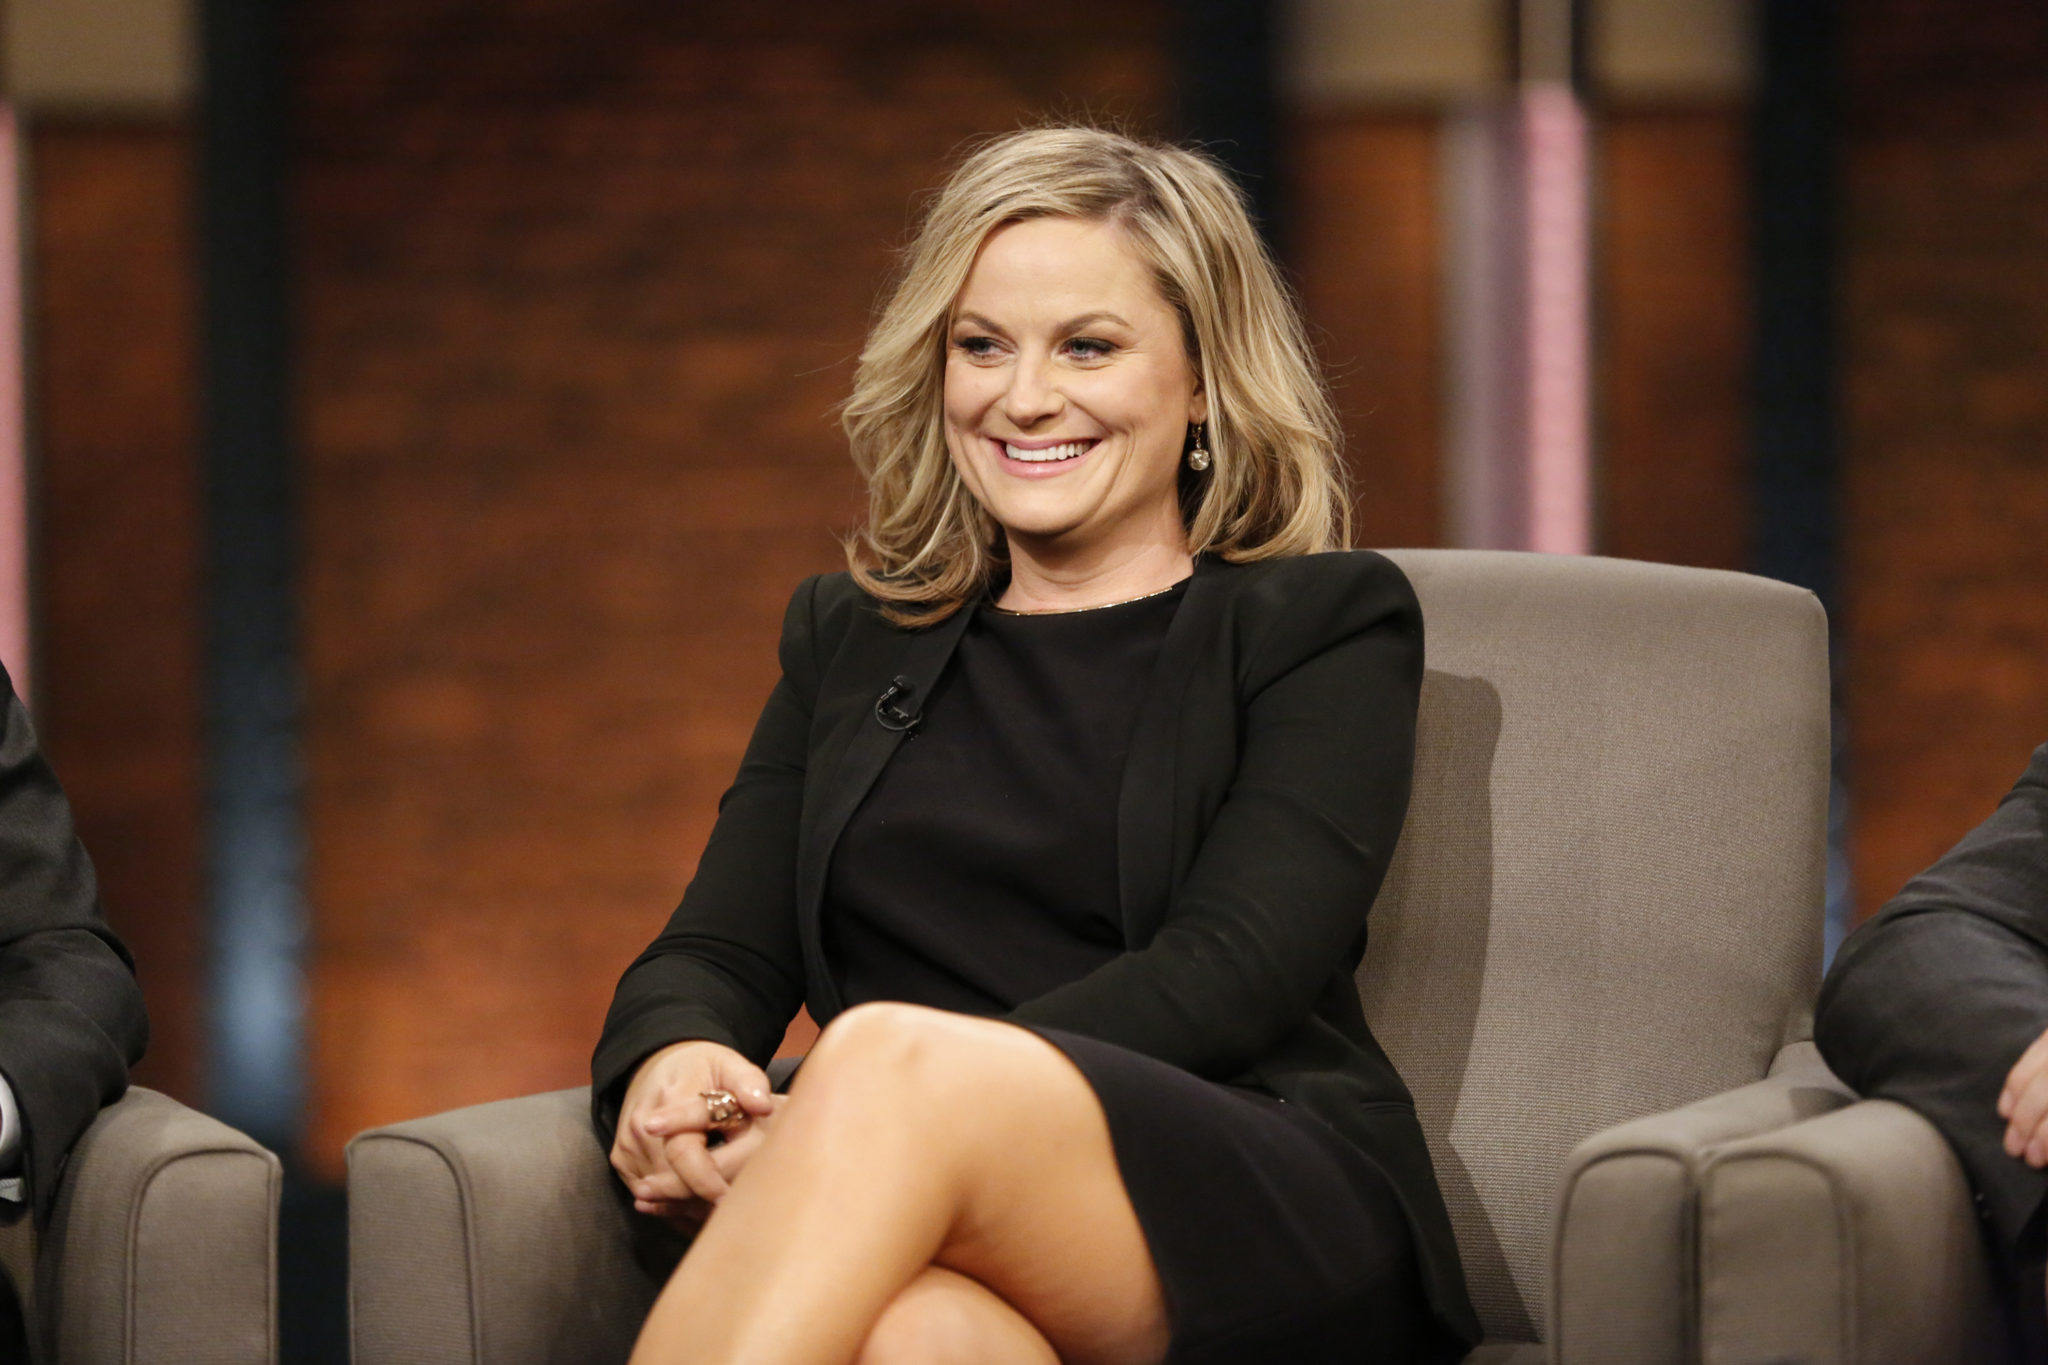 Amy Poehler Net Worth Age Height Movies Husband Celeb Tattler